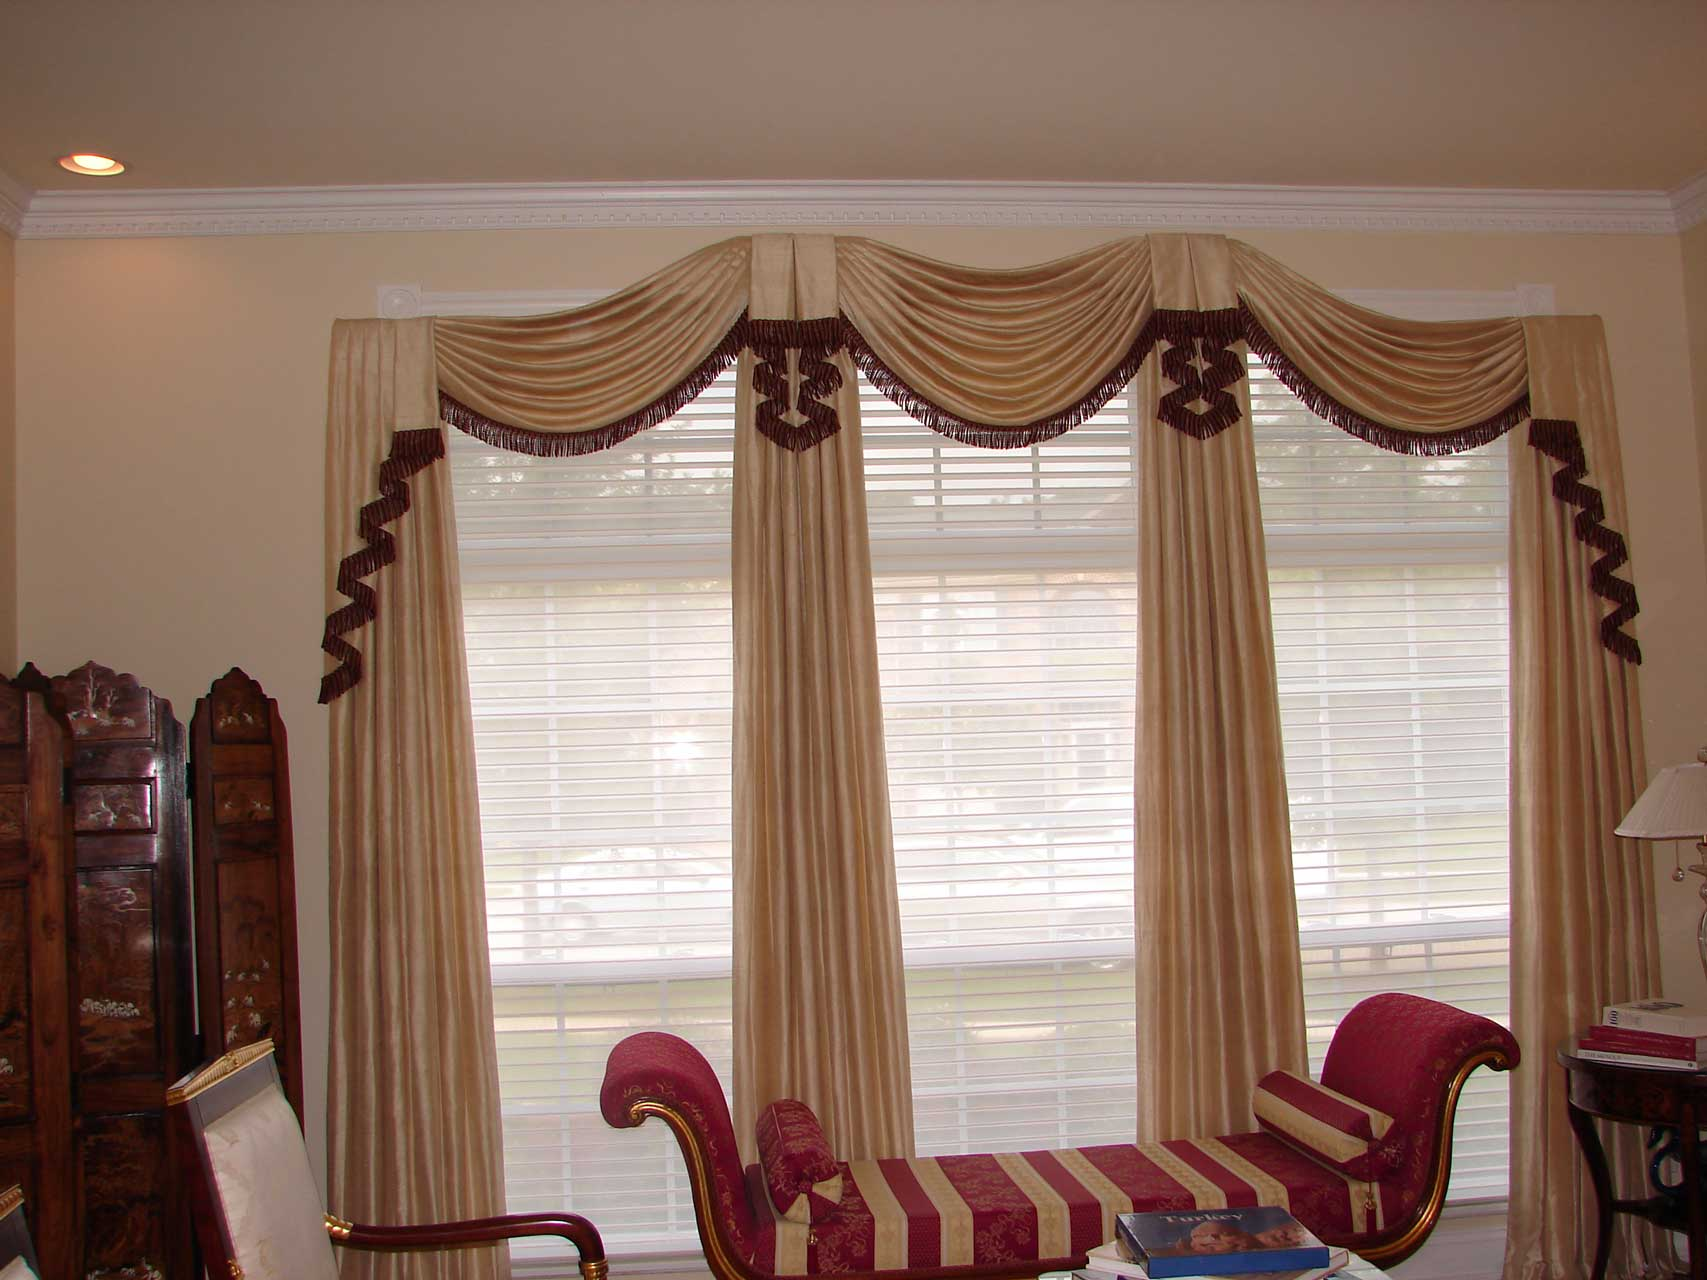 Living room gailani designs inc Elegant window treatment ideas